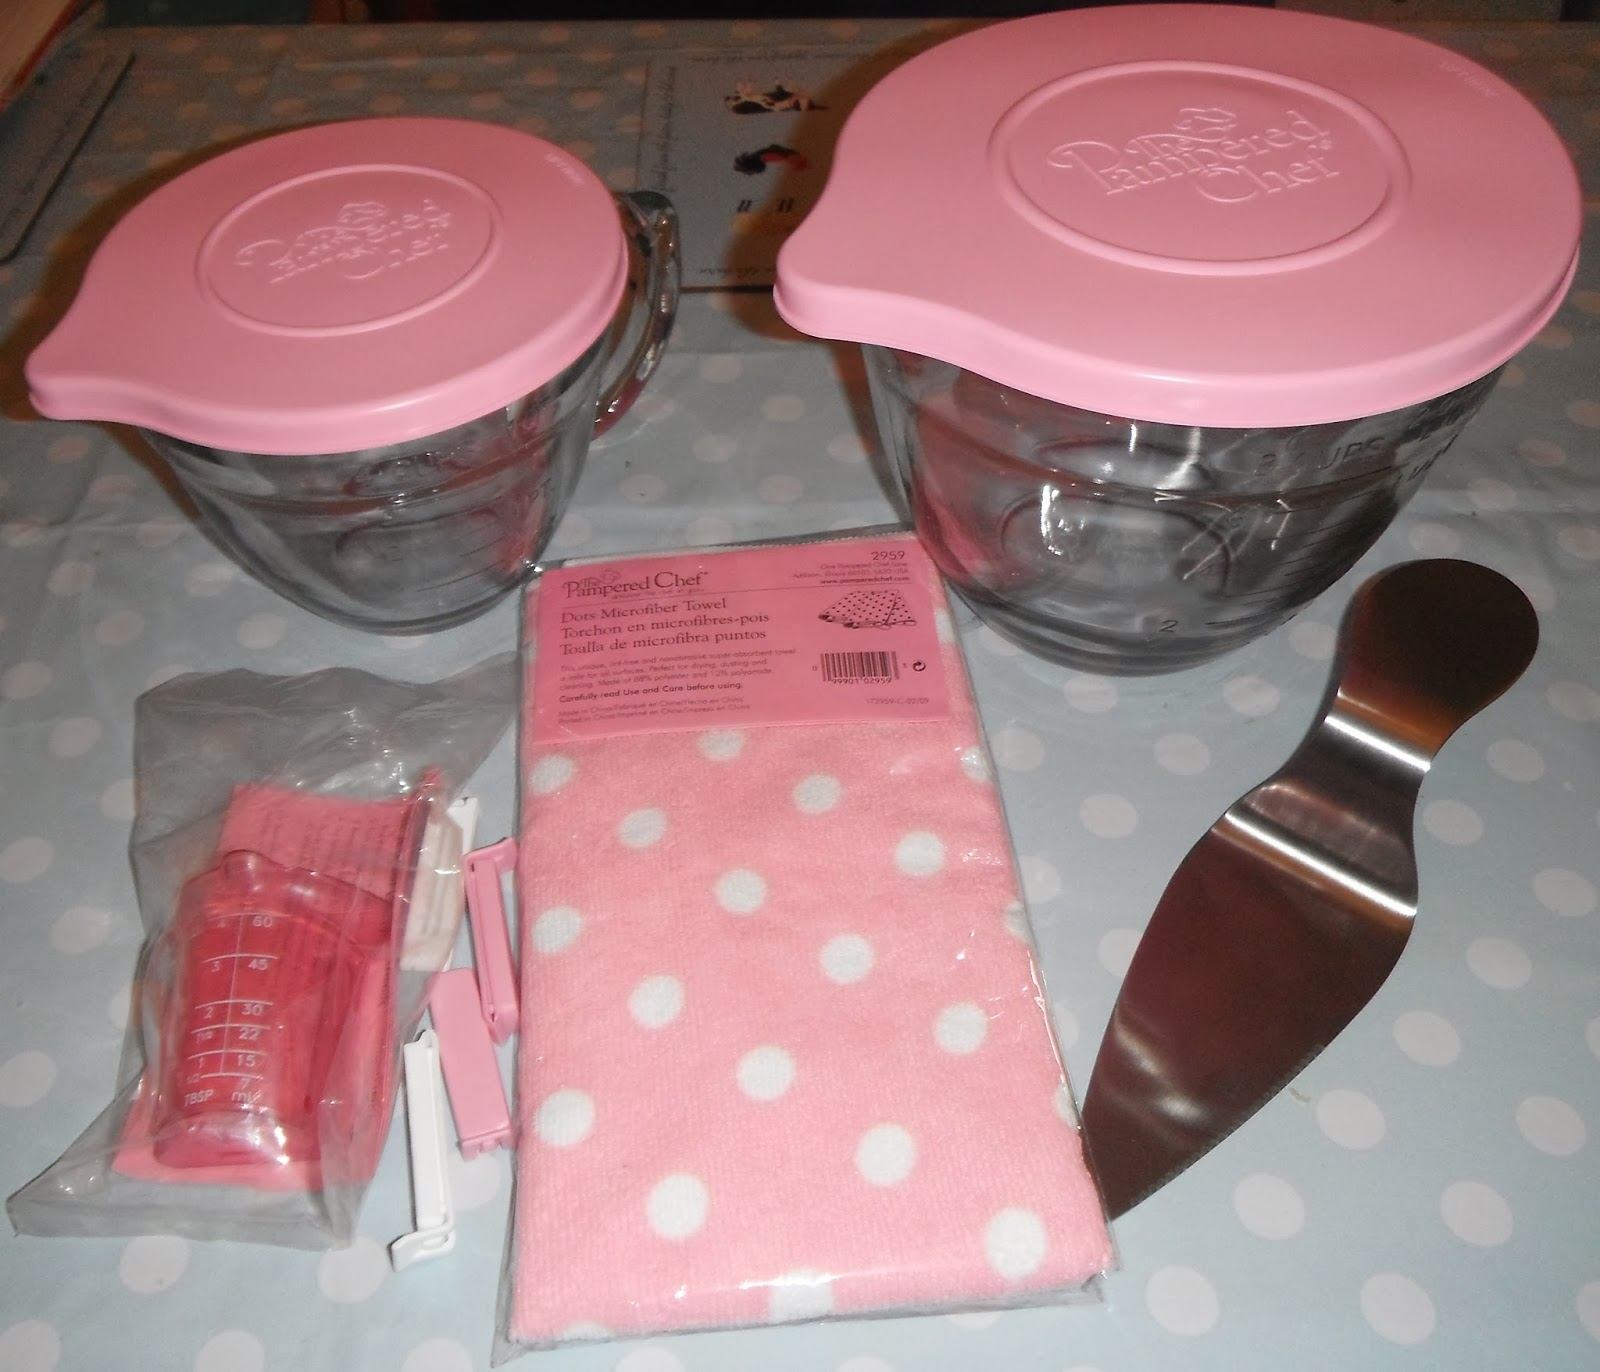 Madhouse Family Reviews: Pampered Chef\'s Pink Range & Raspberry ...